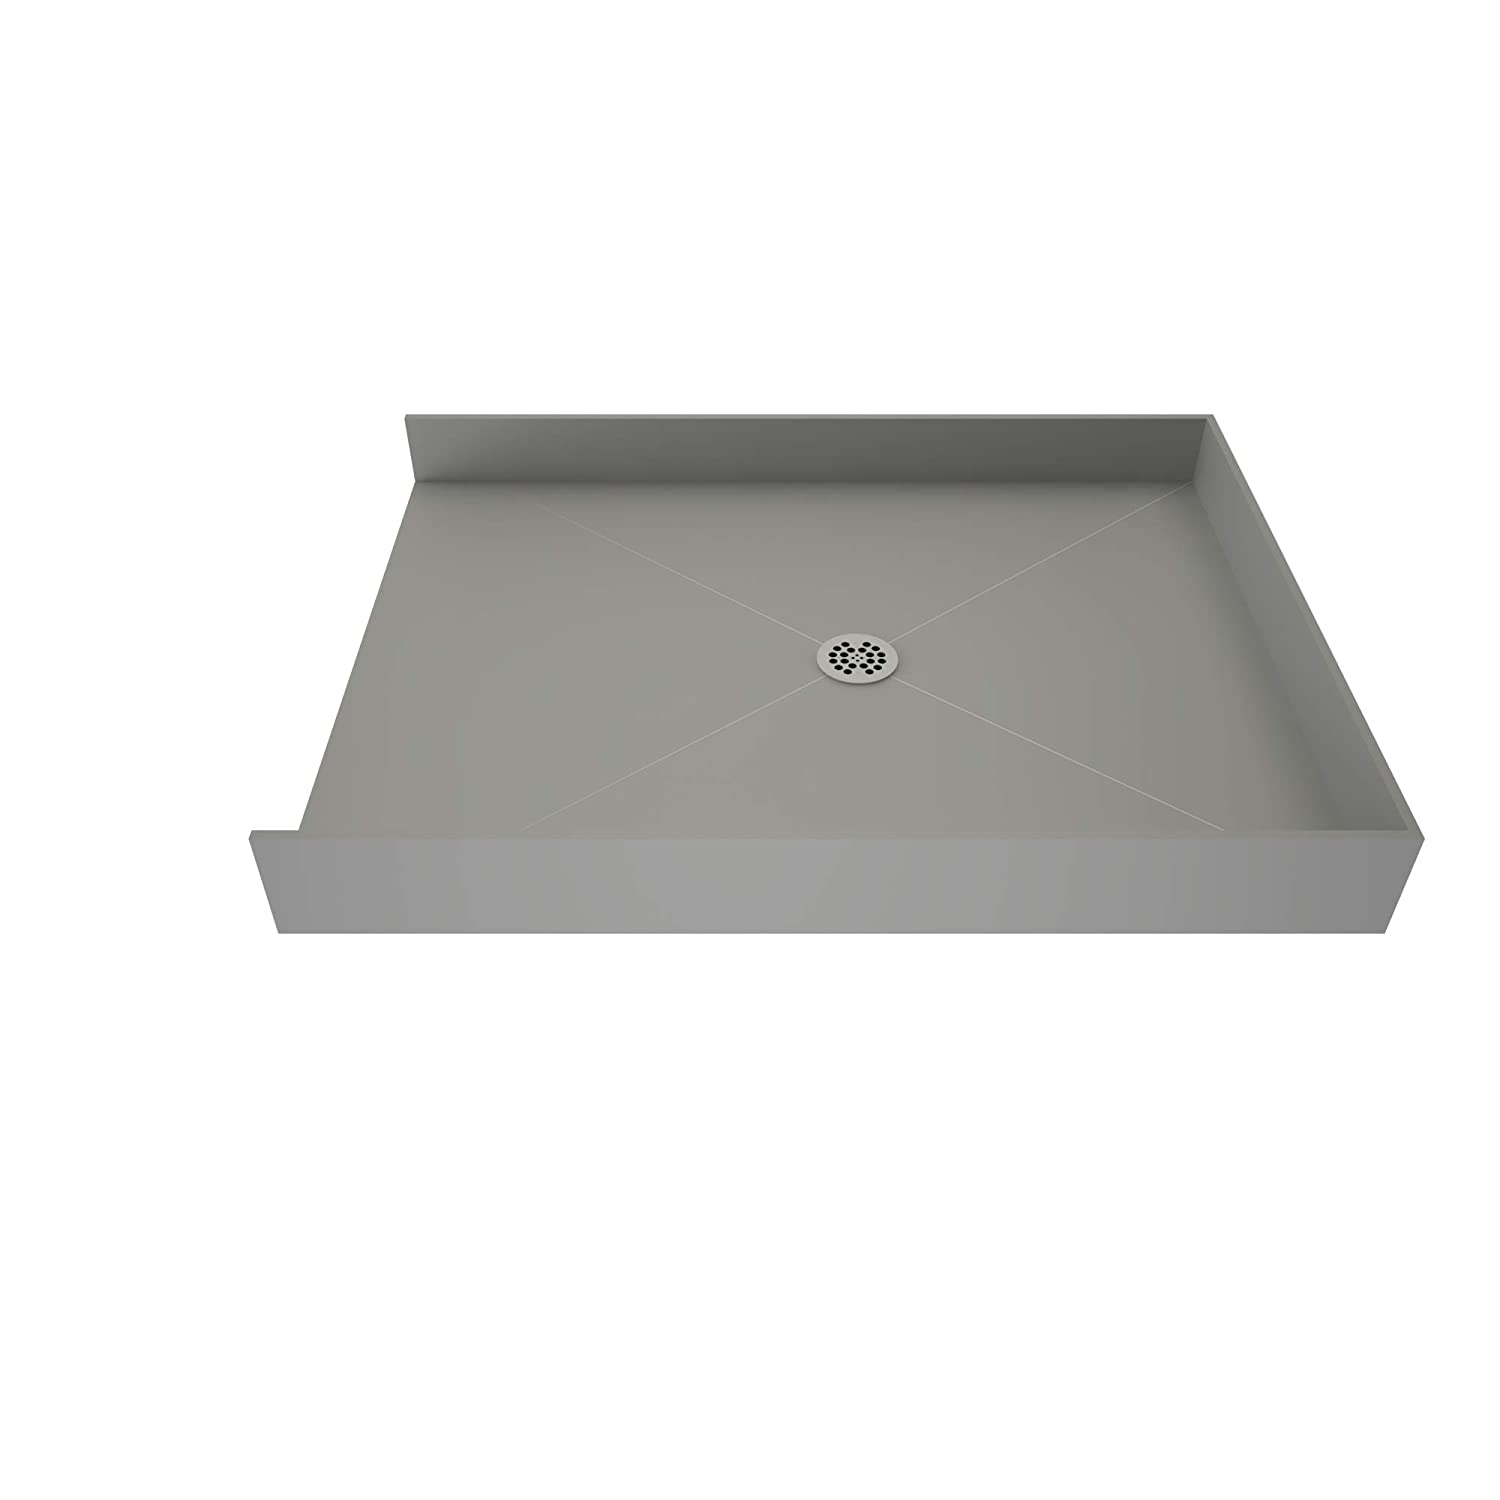 Tile Redi Barrier Free Shower Pan.Amazon Com Tile Redi 4837cbf Pvc Barrier Free Shower Pan